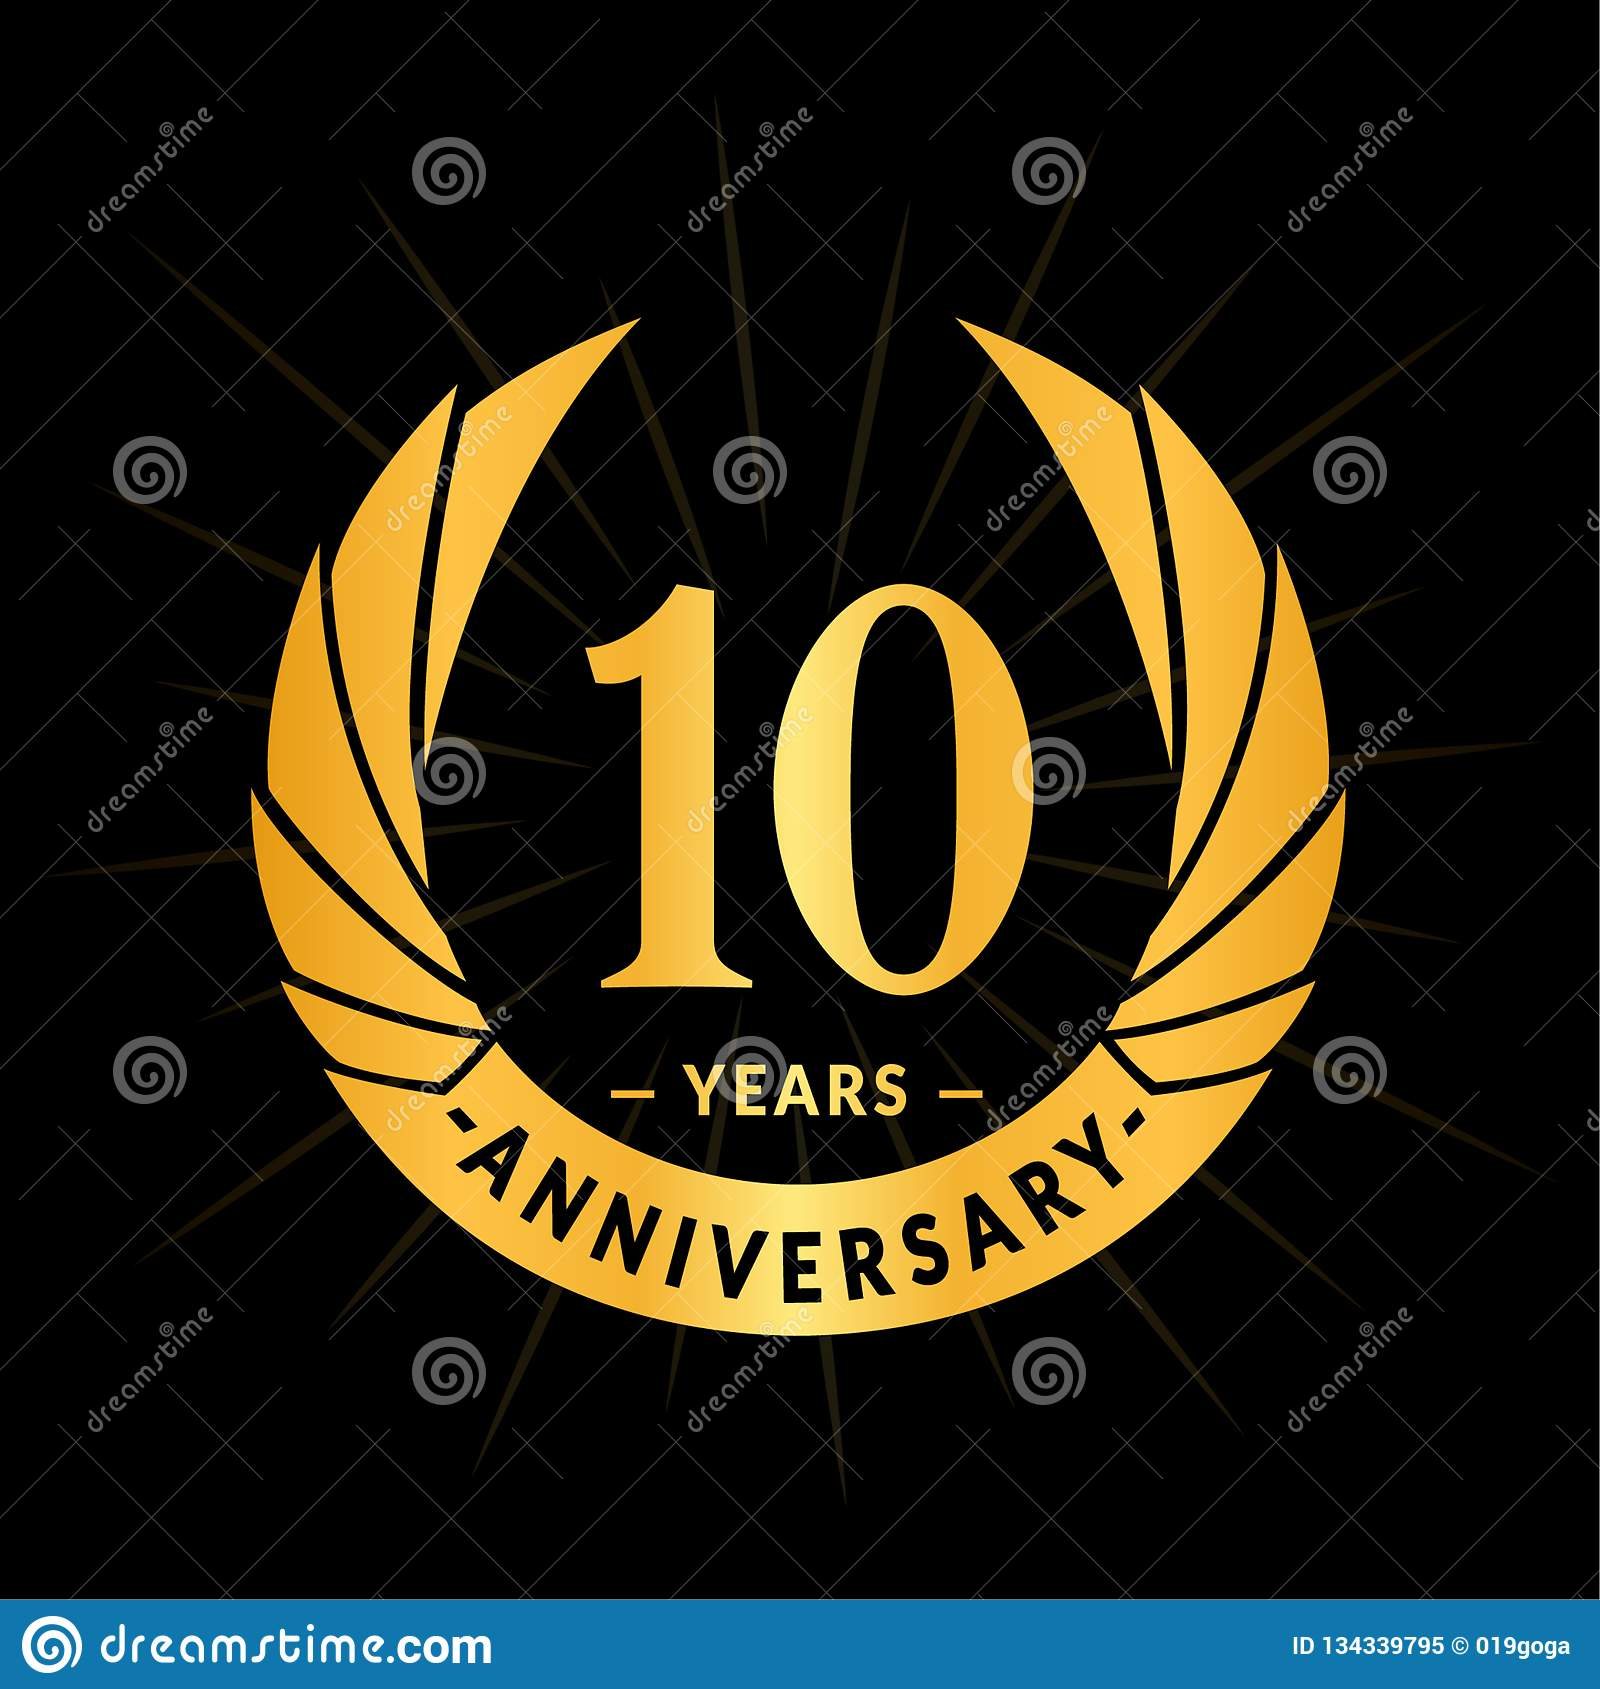 10 years anniversary design